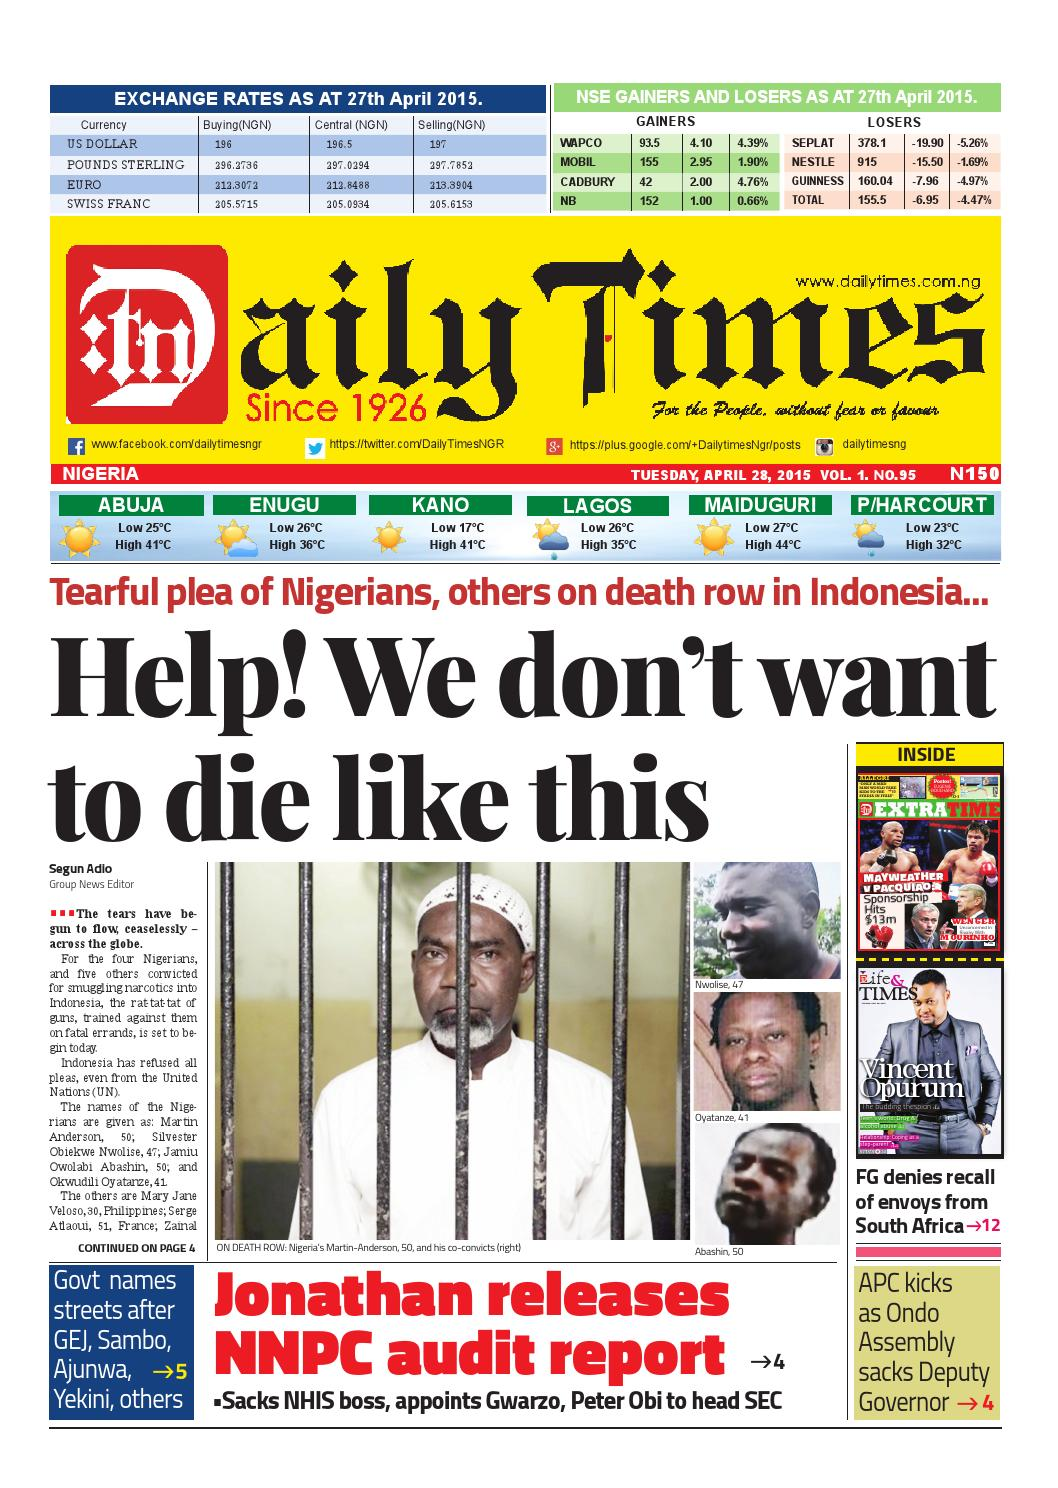 Dtn 28 4 15 By Daily Times Of Nigeria Issuu